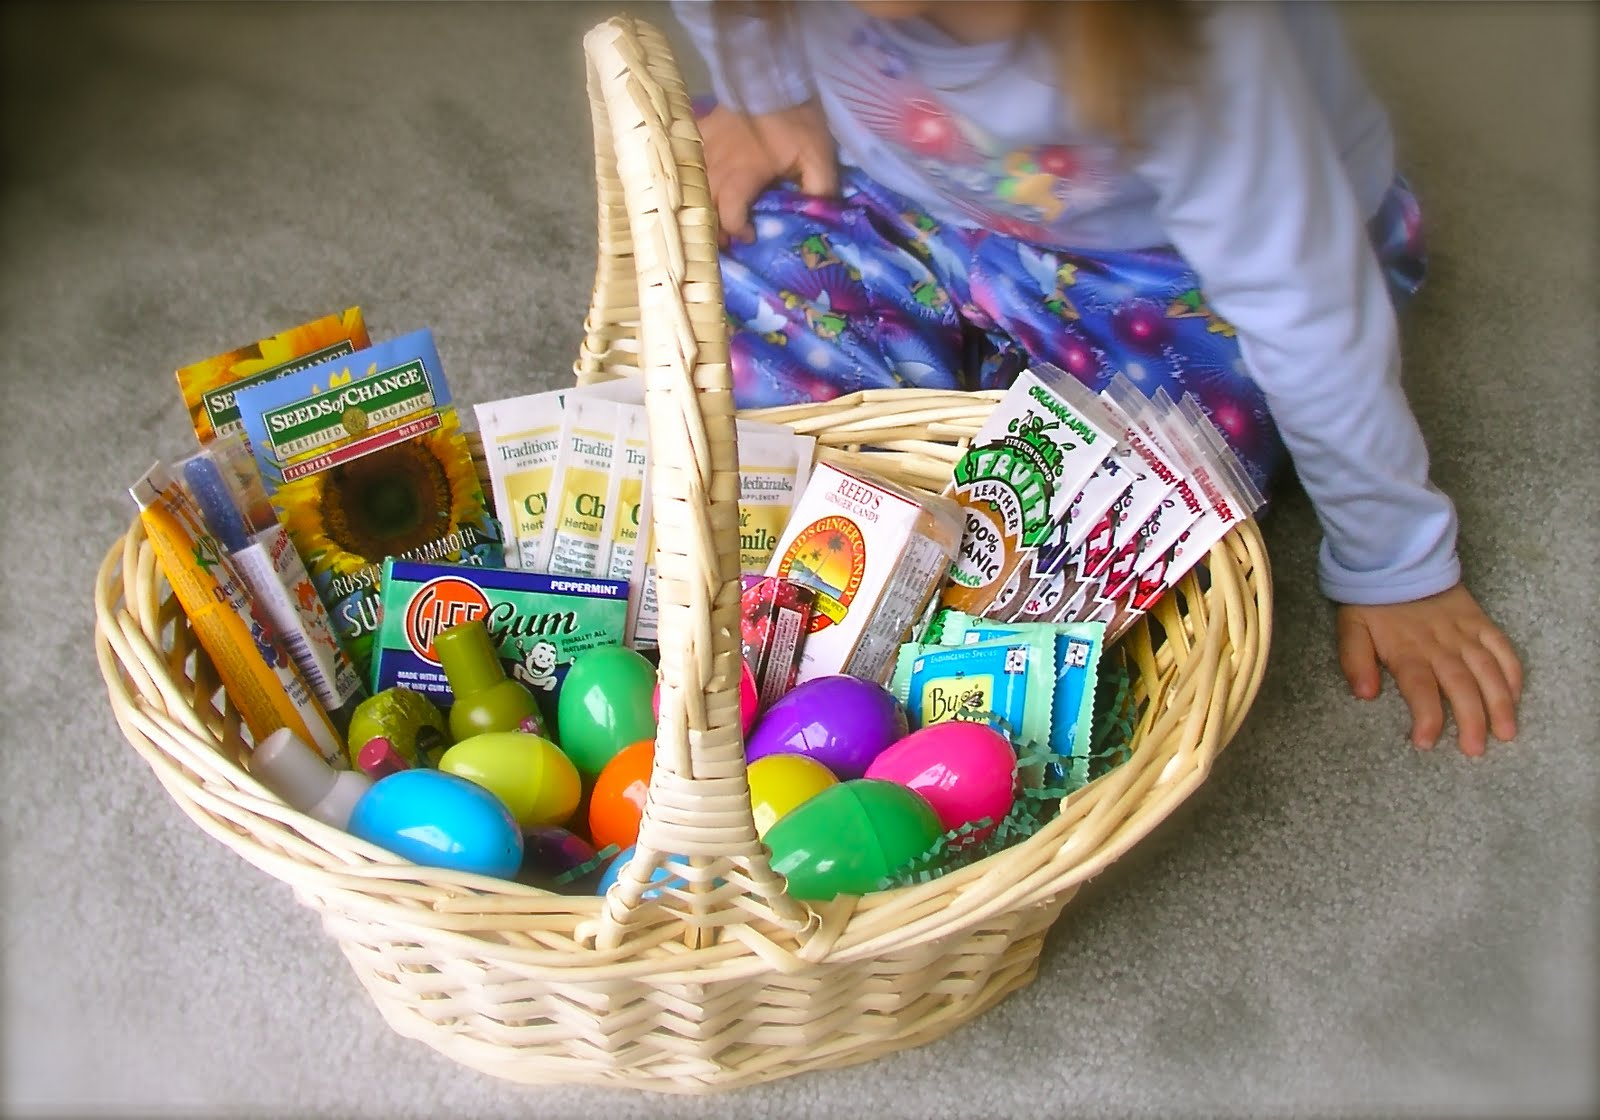 Nourishing meals healthy easter basket ideas healthy easter basket ideas negle